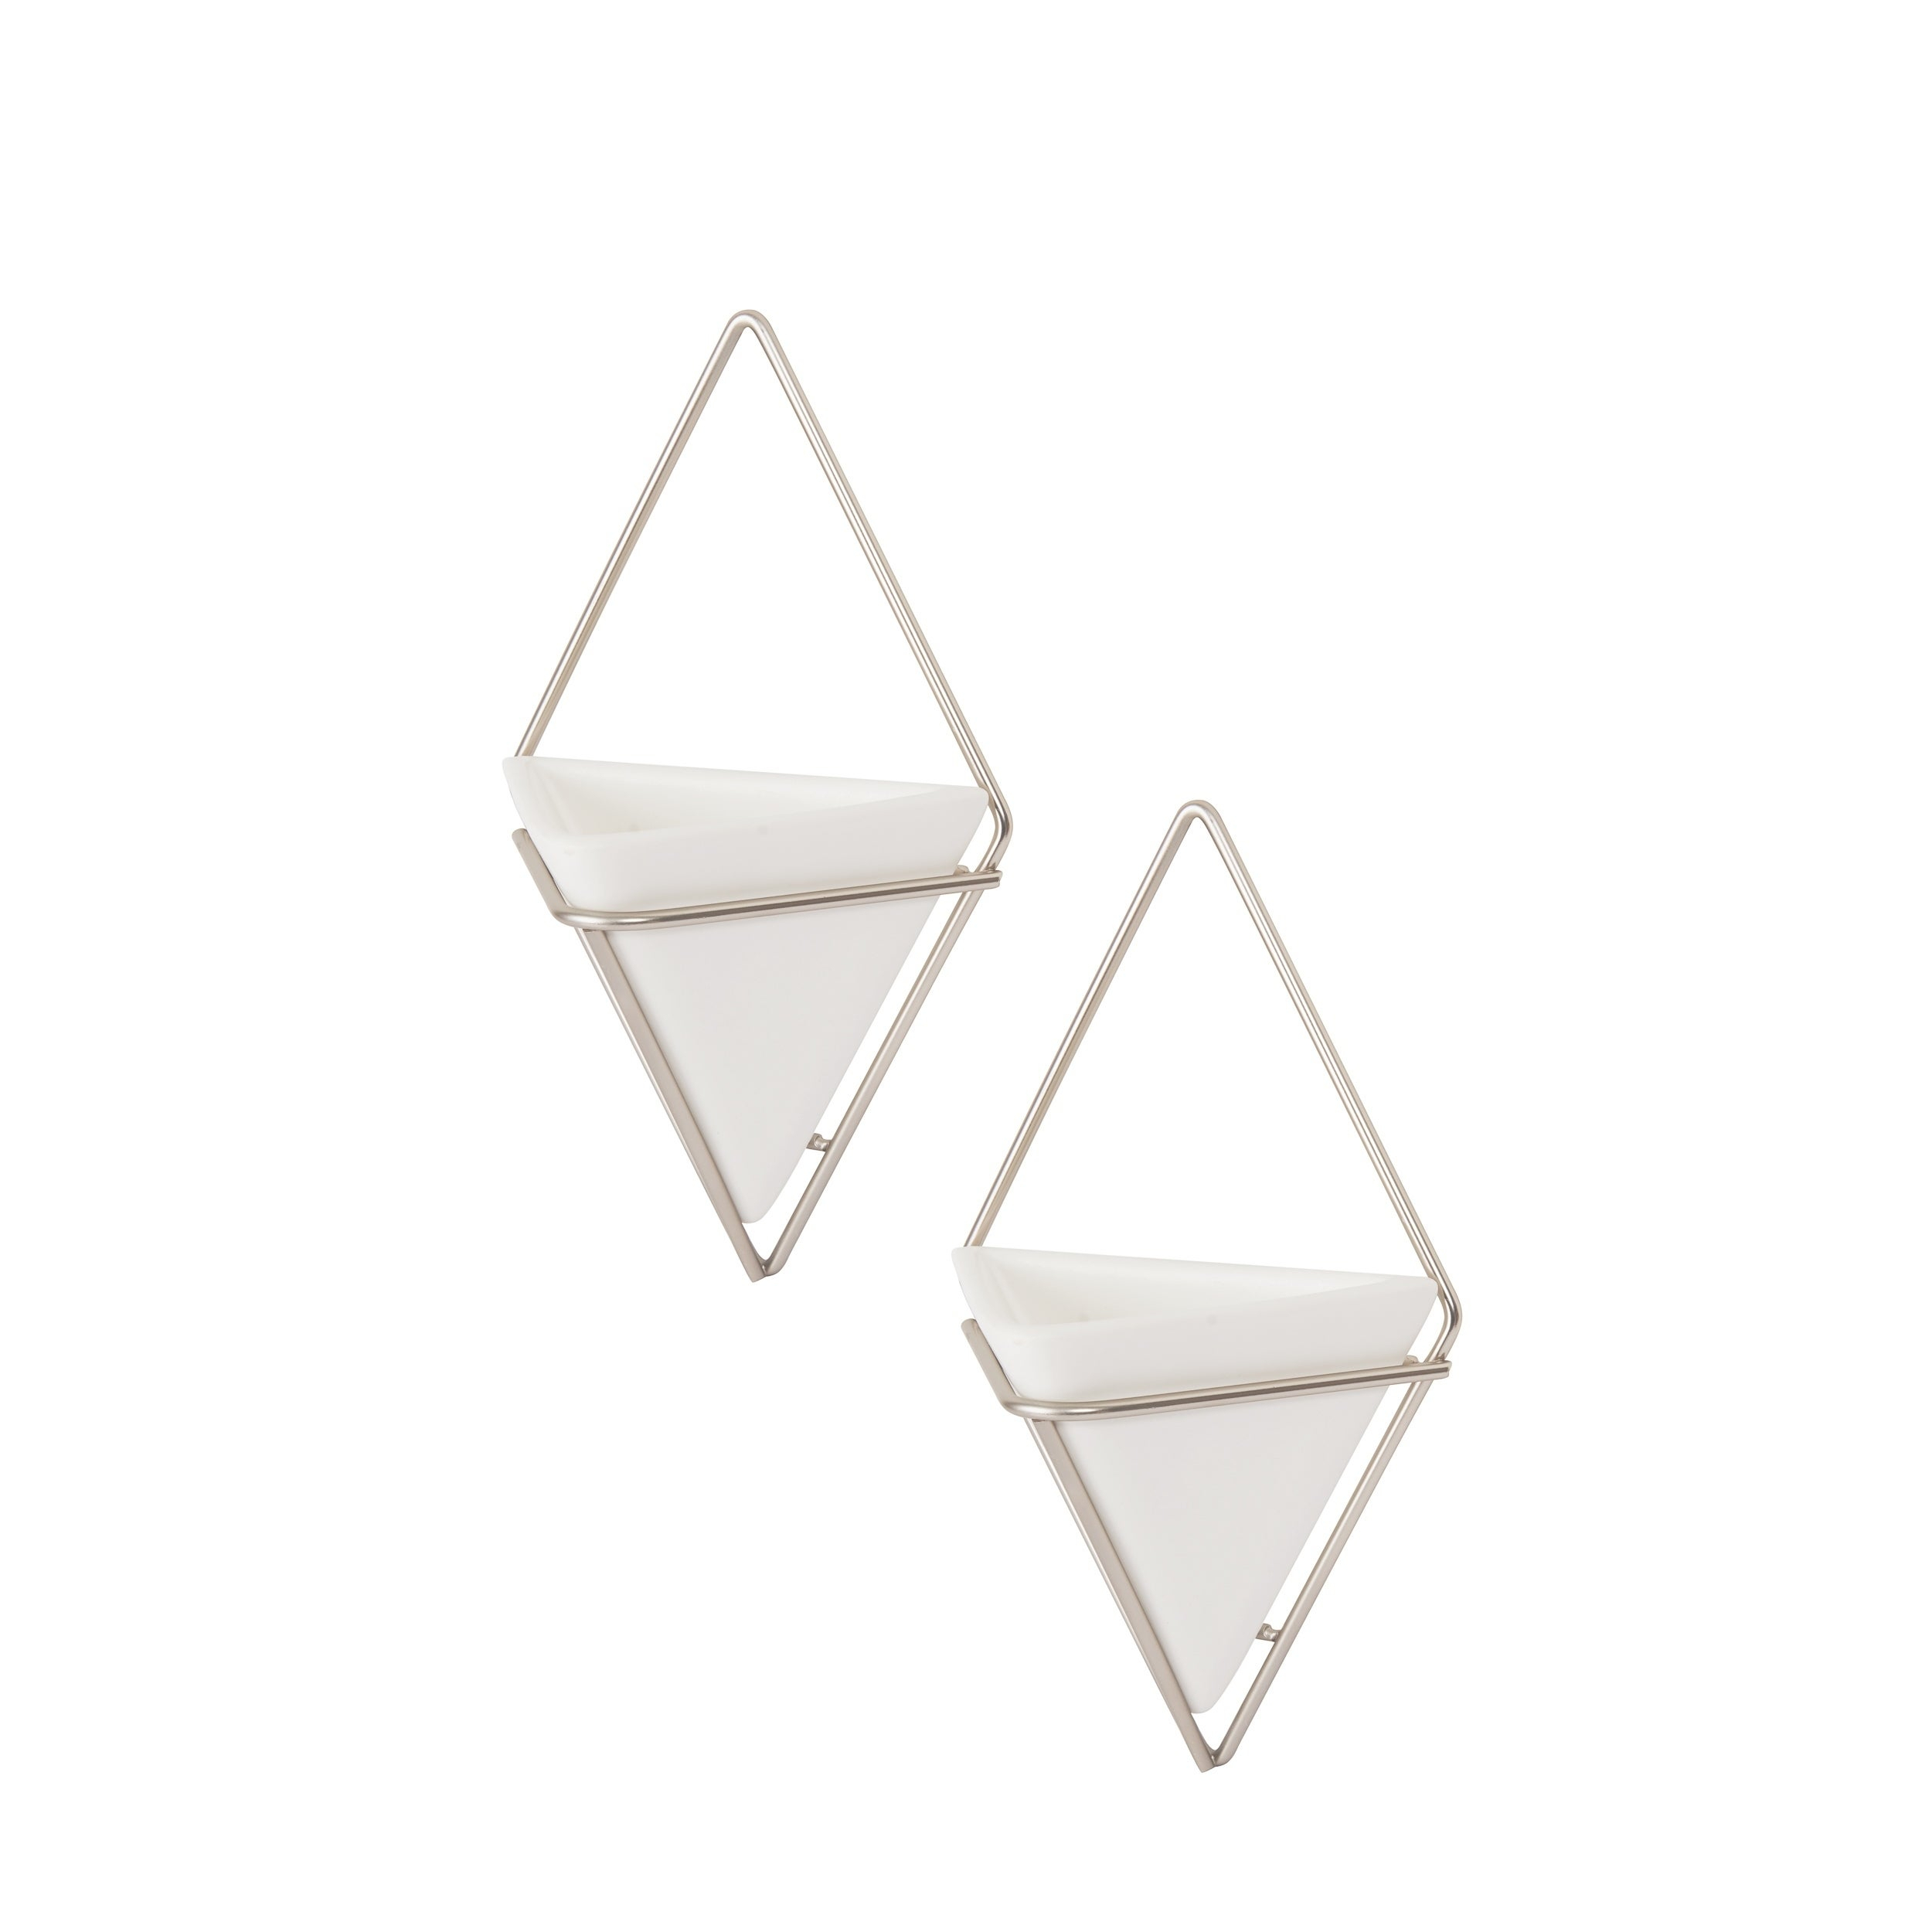 2 Piece Trigg Wall Decor Sets (Set Of 2) Intended For Most Up To Date Shop Umbra Trigg Hanging Planter & Wall Decor (Set Of 2) – Free (View 1 of 20)